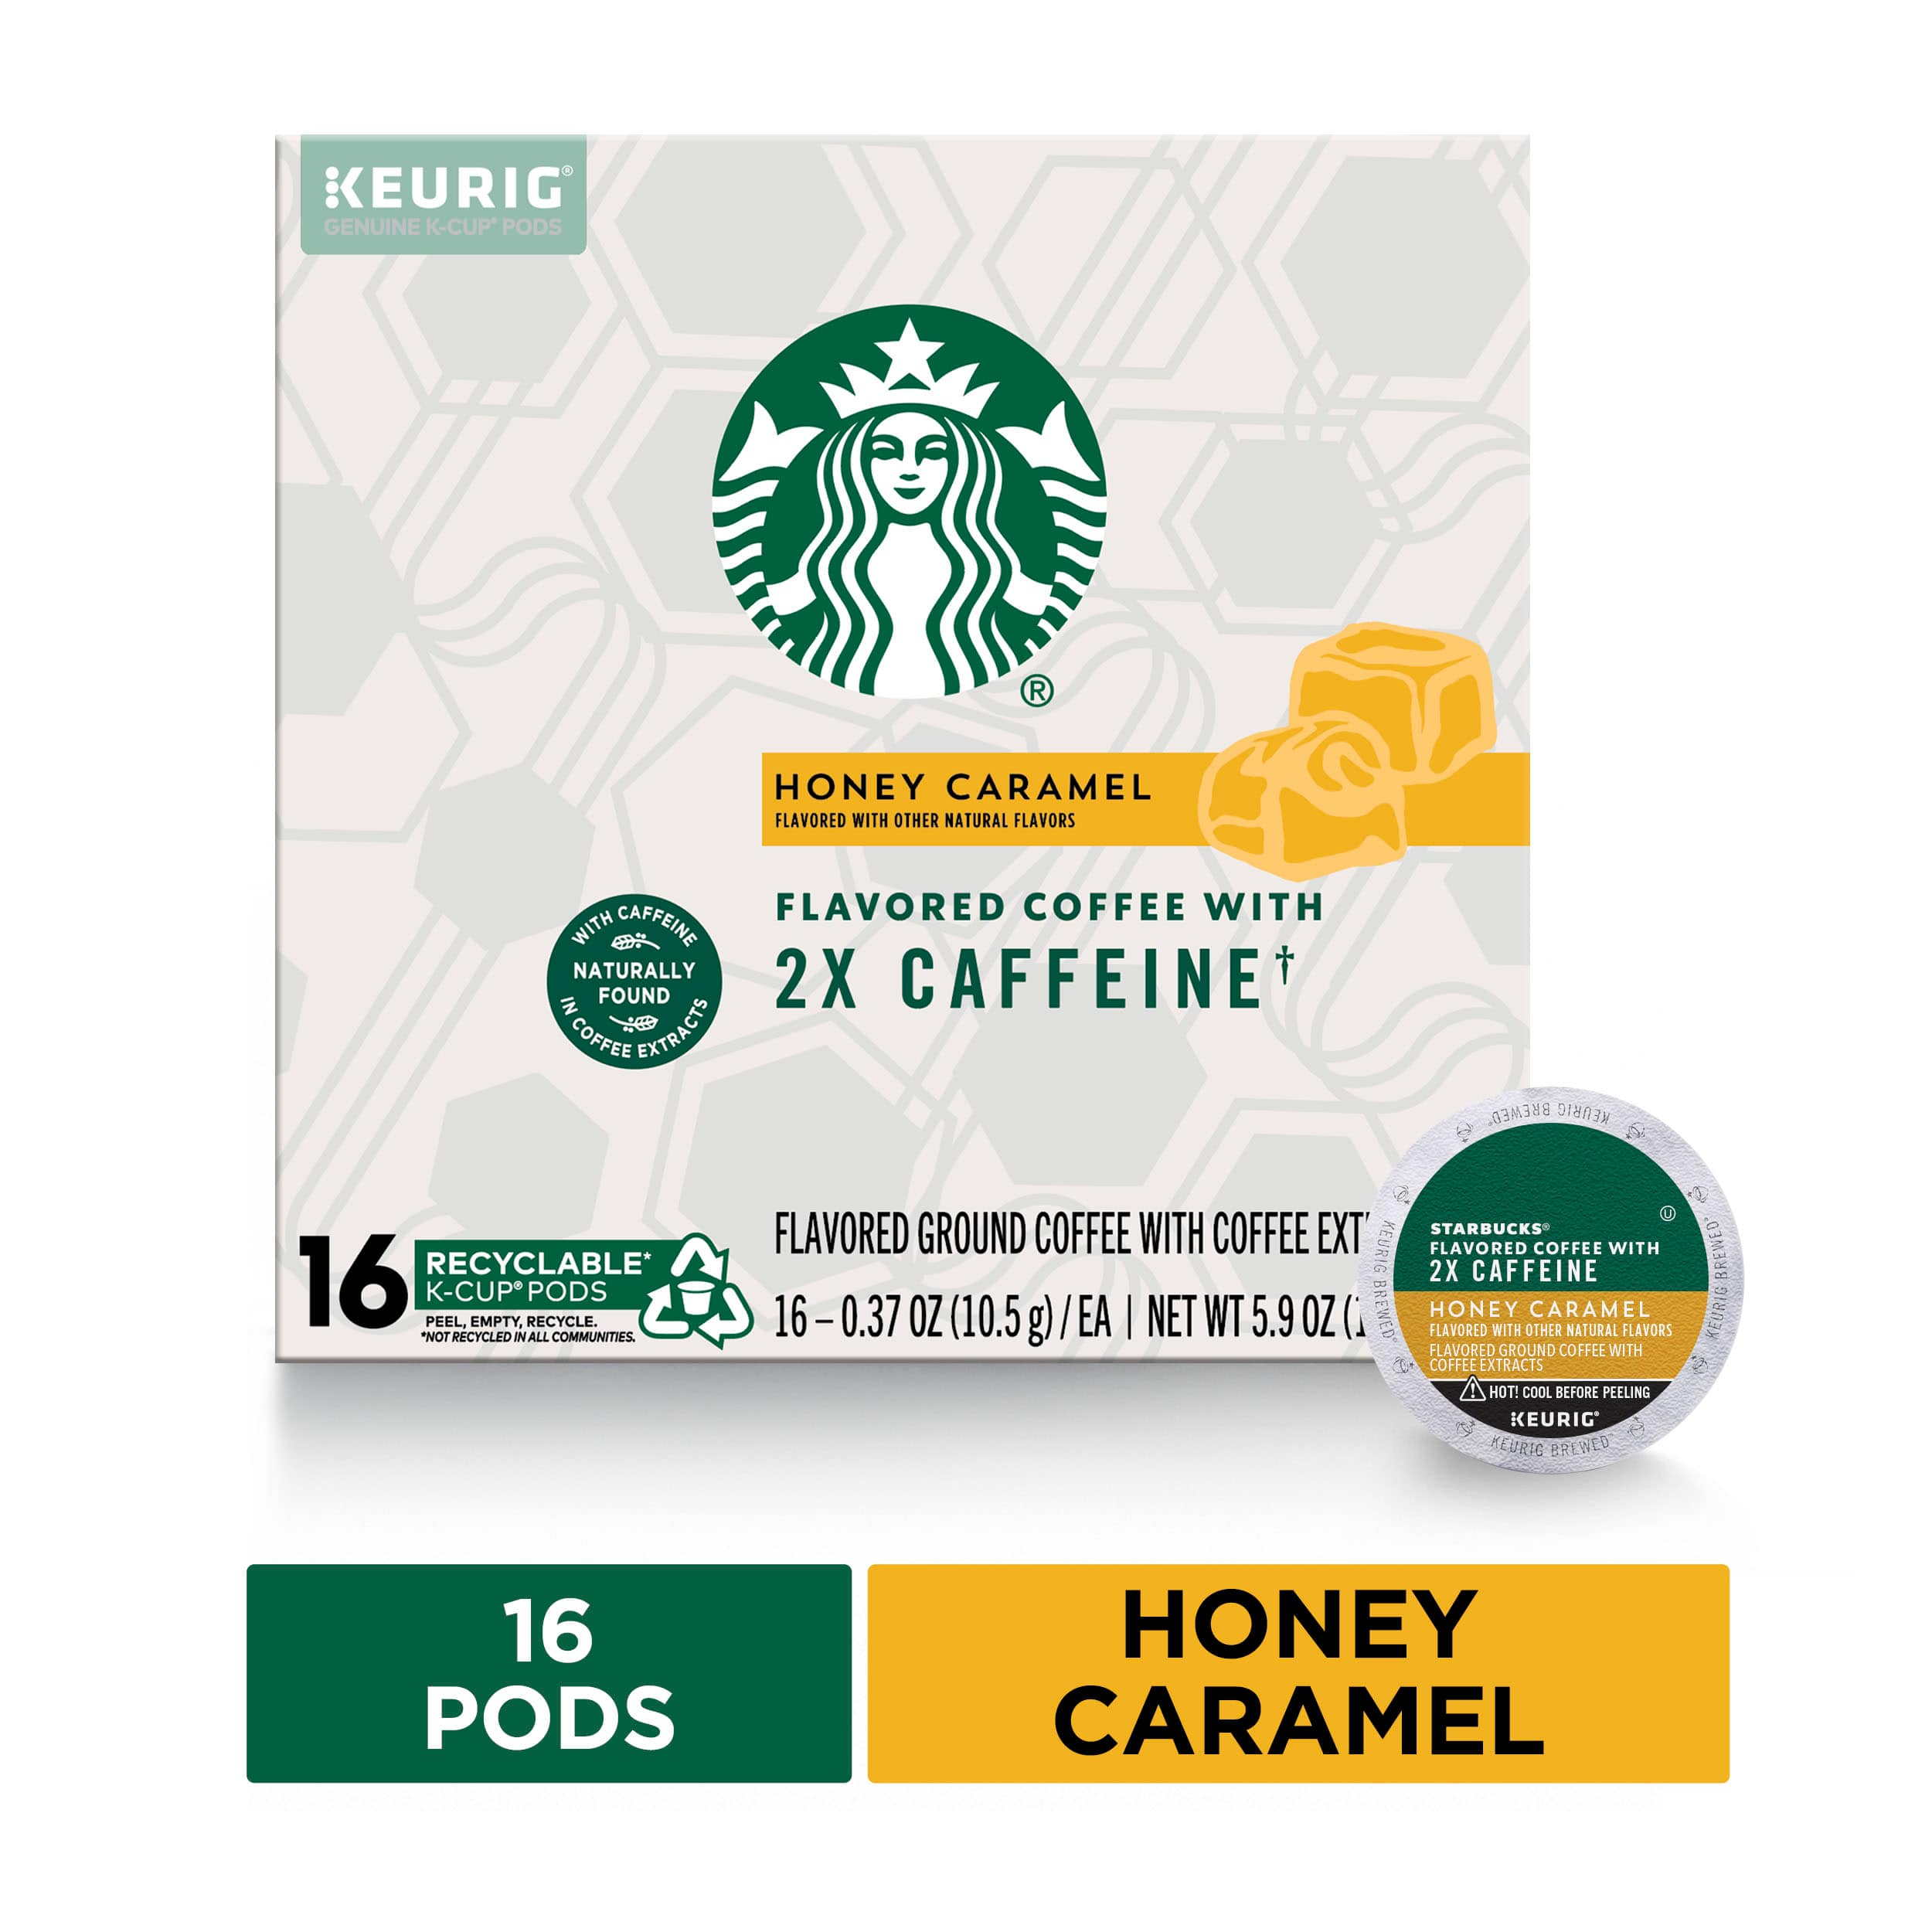 Starbucks Flavored K-Cup Coffee Pods with 2X Caffeine~Honey Caramel for Keurig Brewers~1 box (16 pods) $3.25 @ Walmart B+M~YMMV!